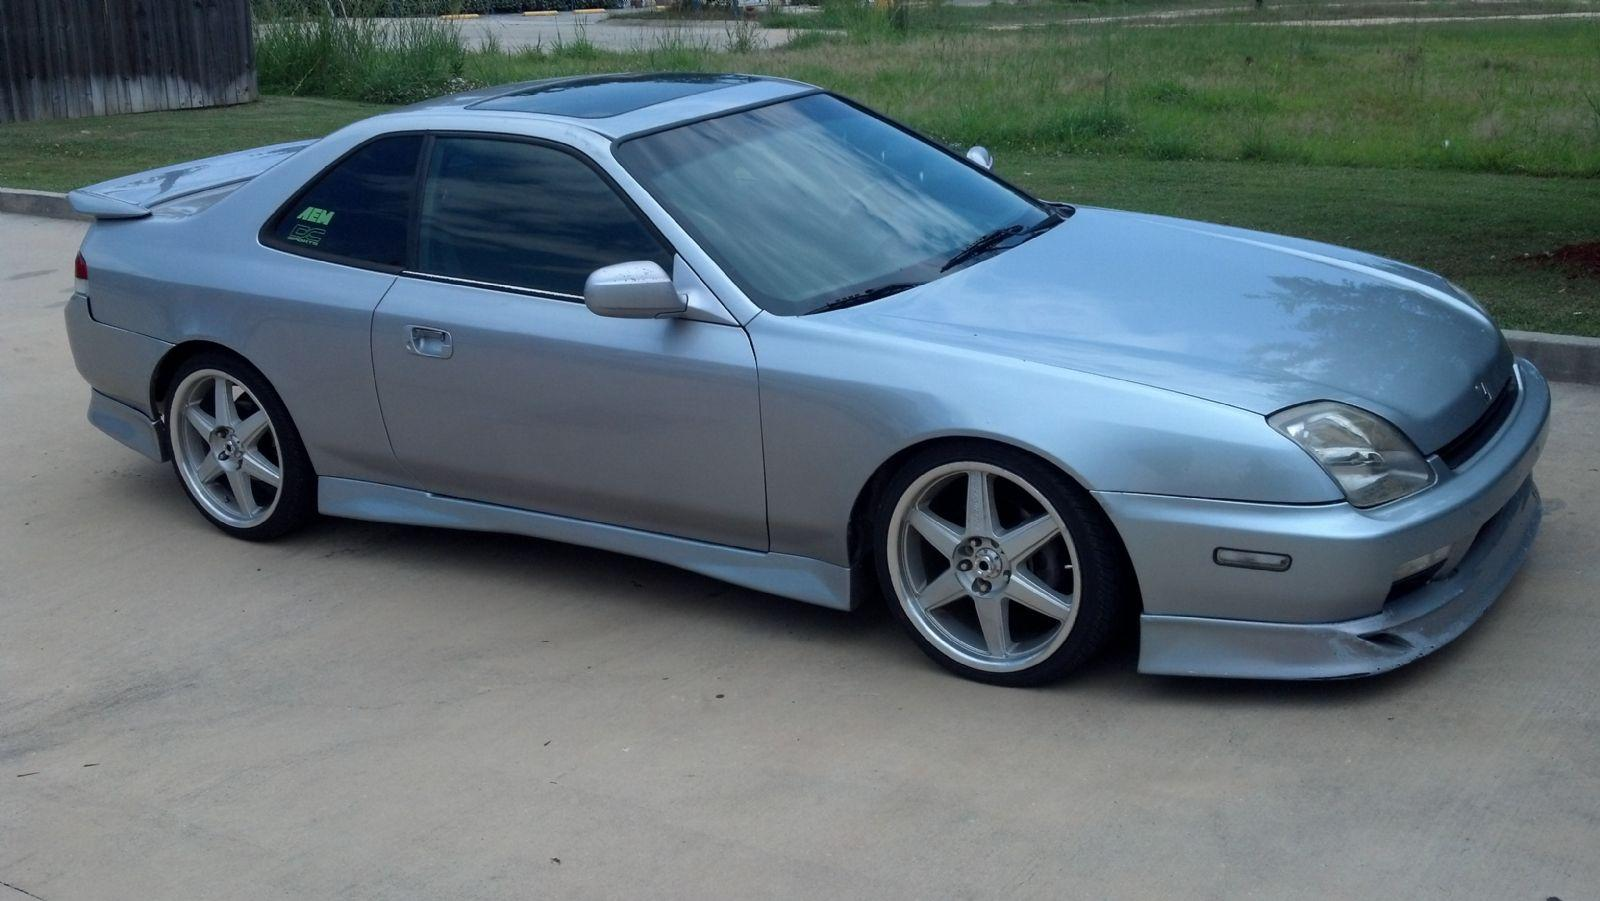 1998 Honda Prelude - Information And Photos